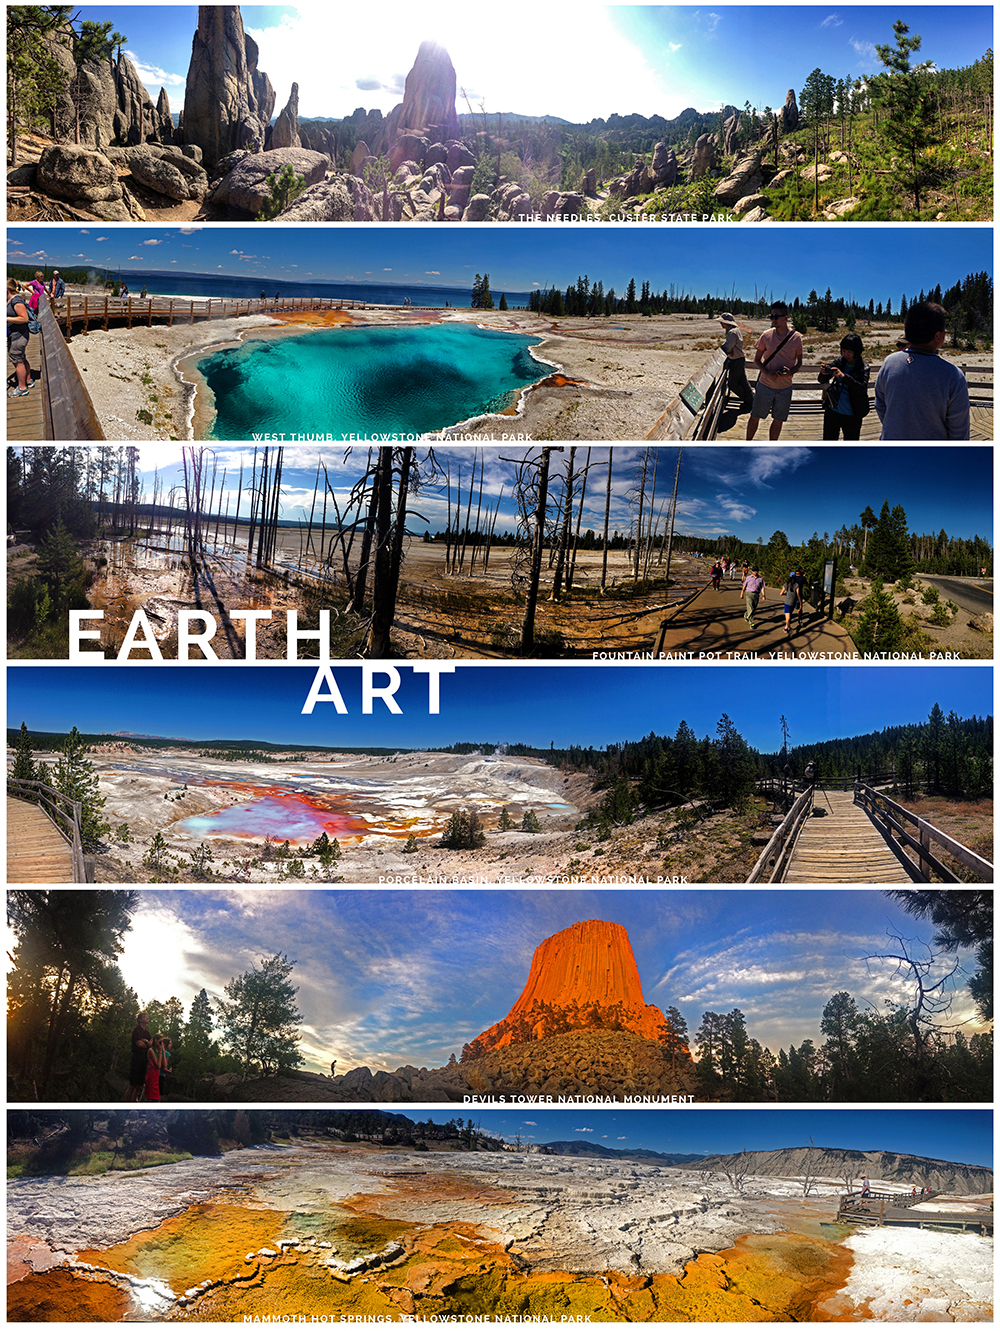 American Southwest 2016 Panorama Poster_05_01